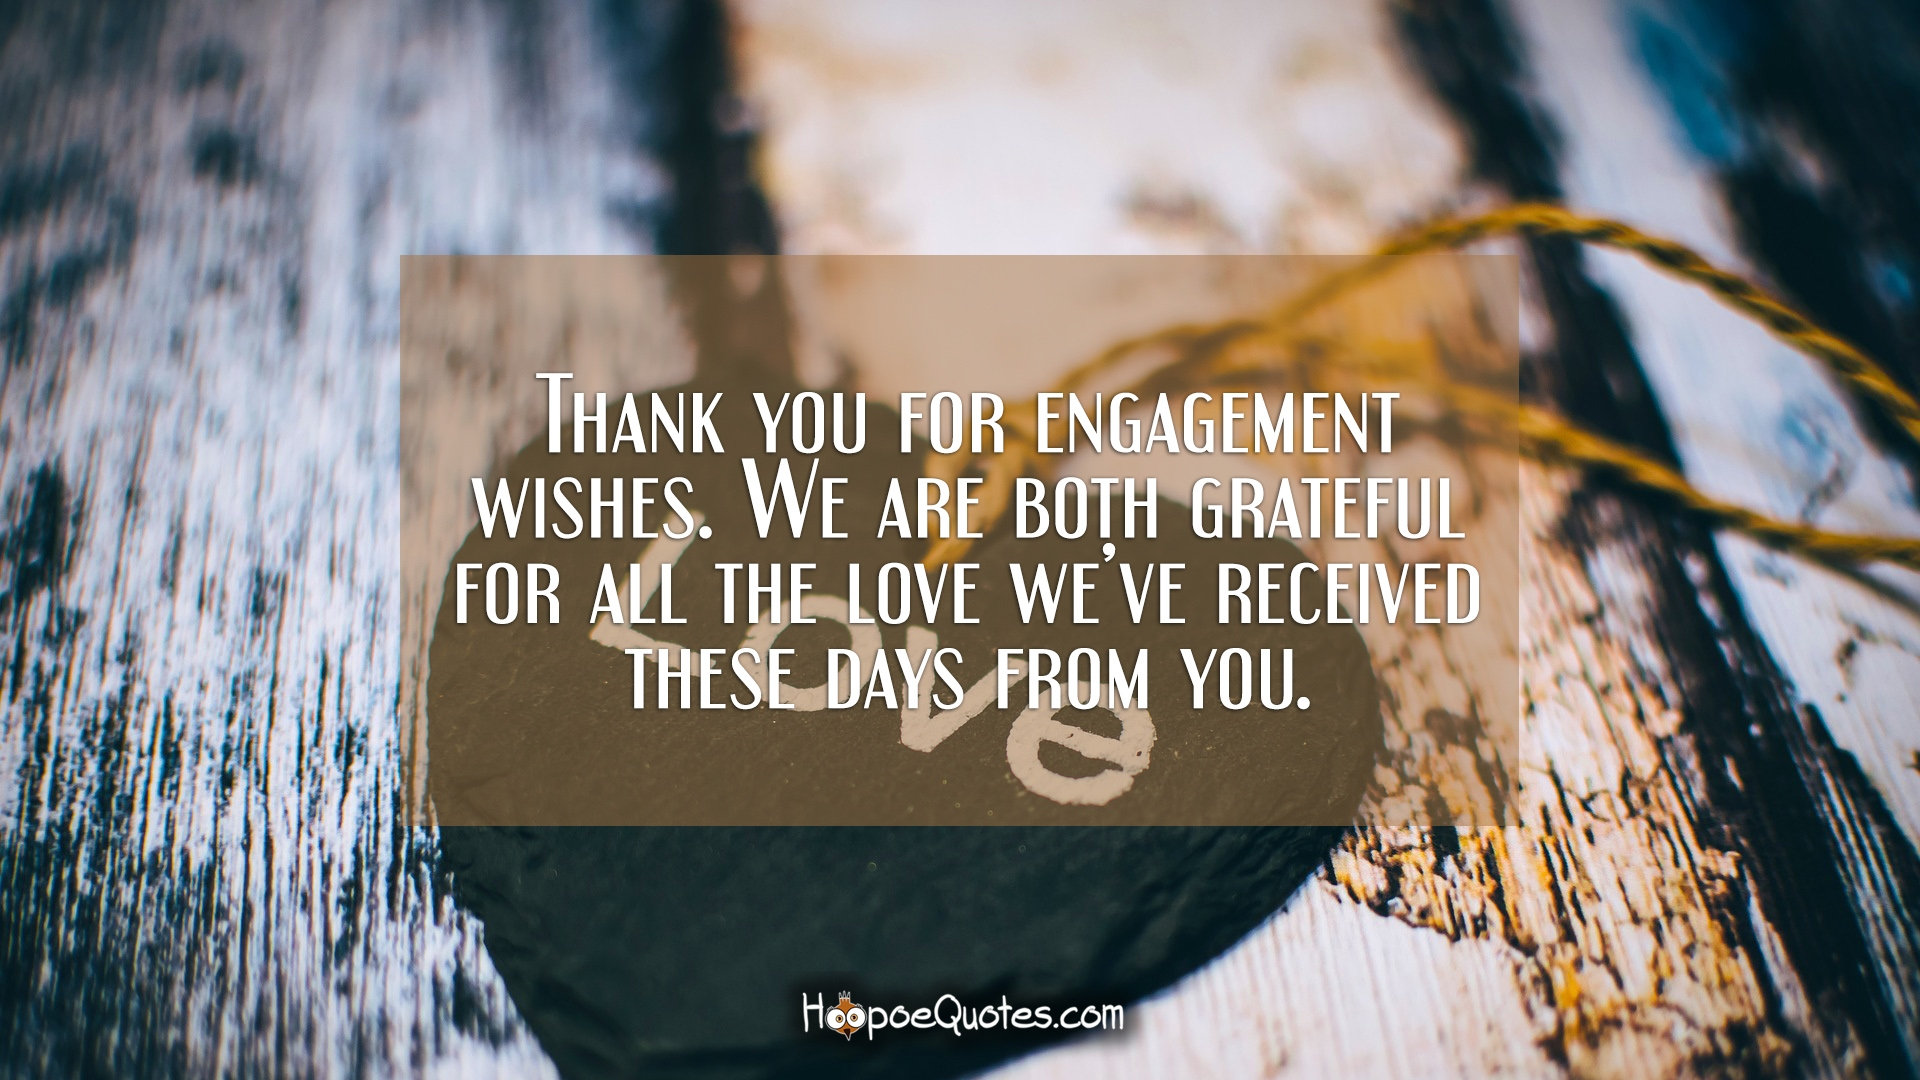 Thank you for engagement wishes. We are both grateful for ...